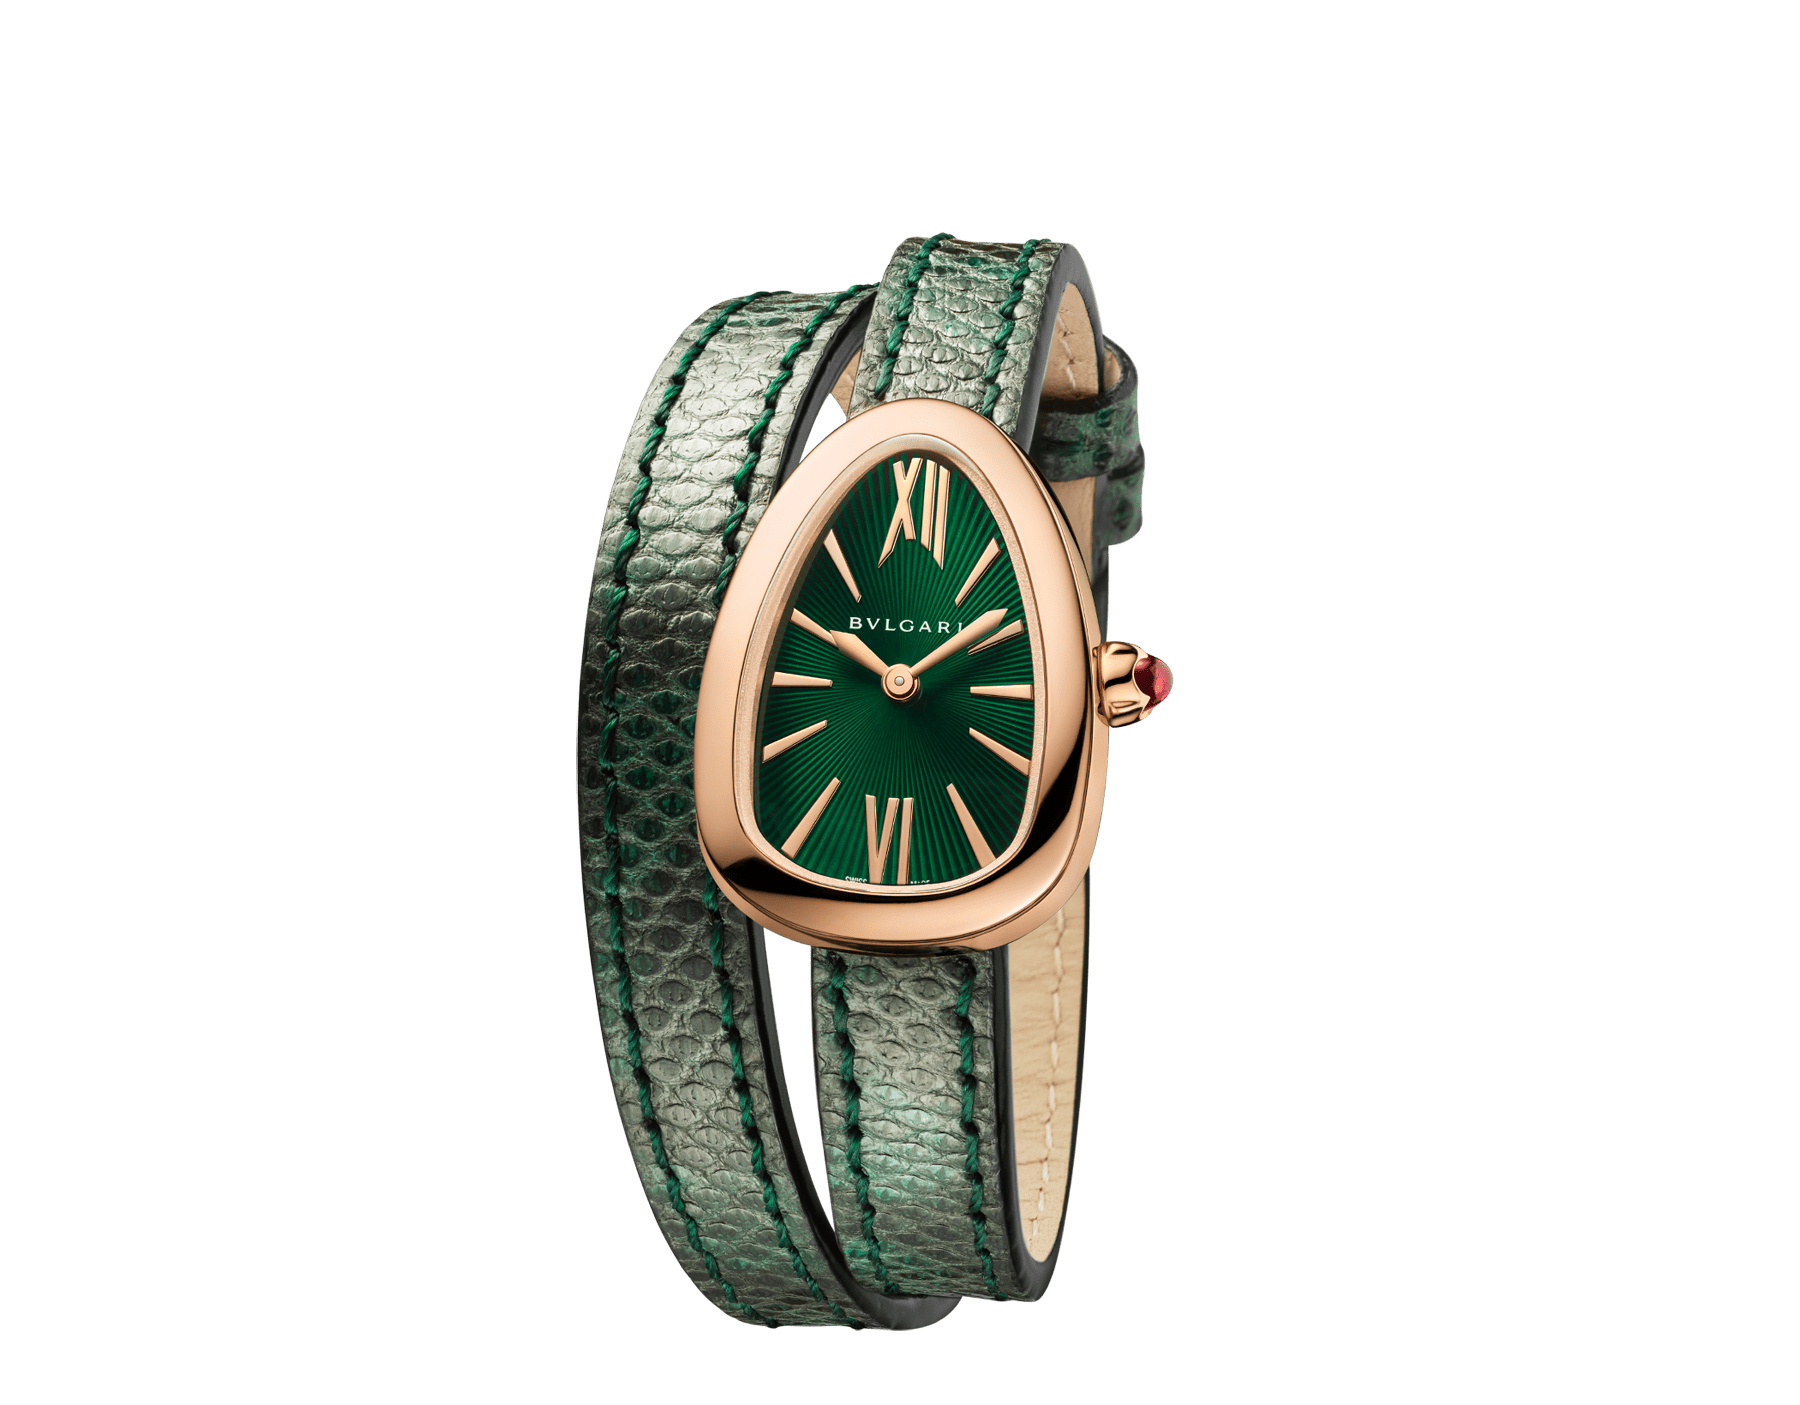 Serpenti watch with 18 kt rose gold case, green lacquered dial and interchangeable double spiral bracelet in green karung leather. 102726 image 2